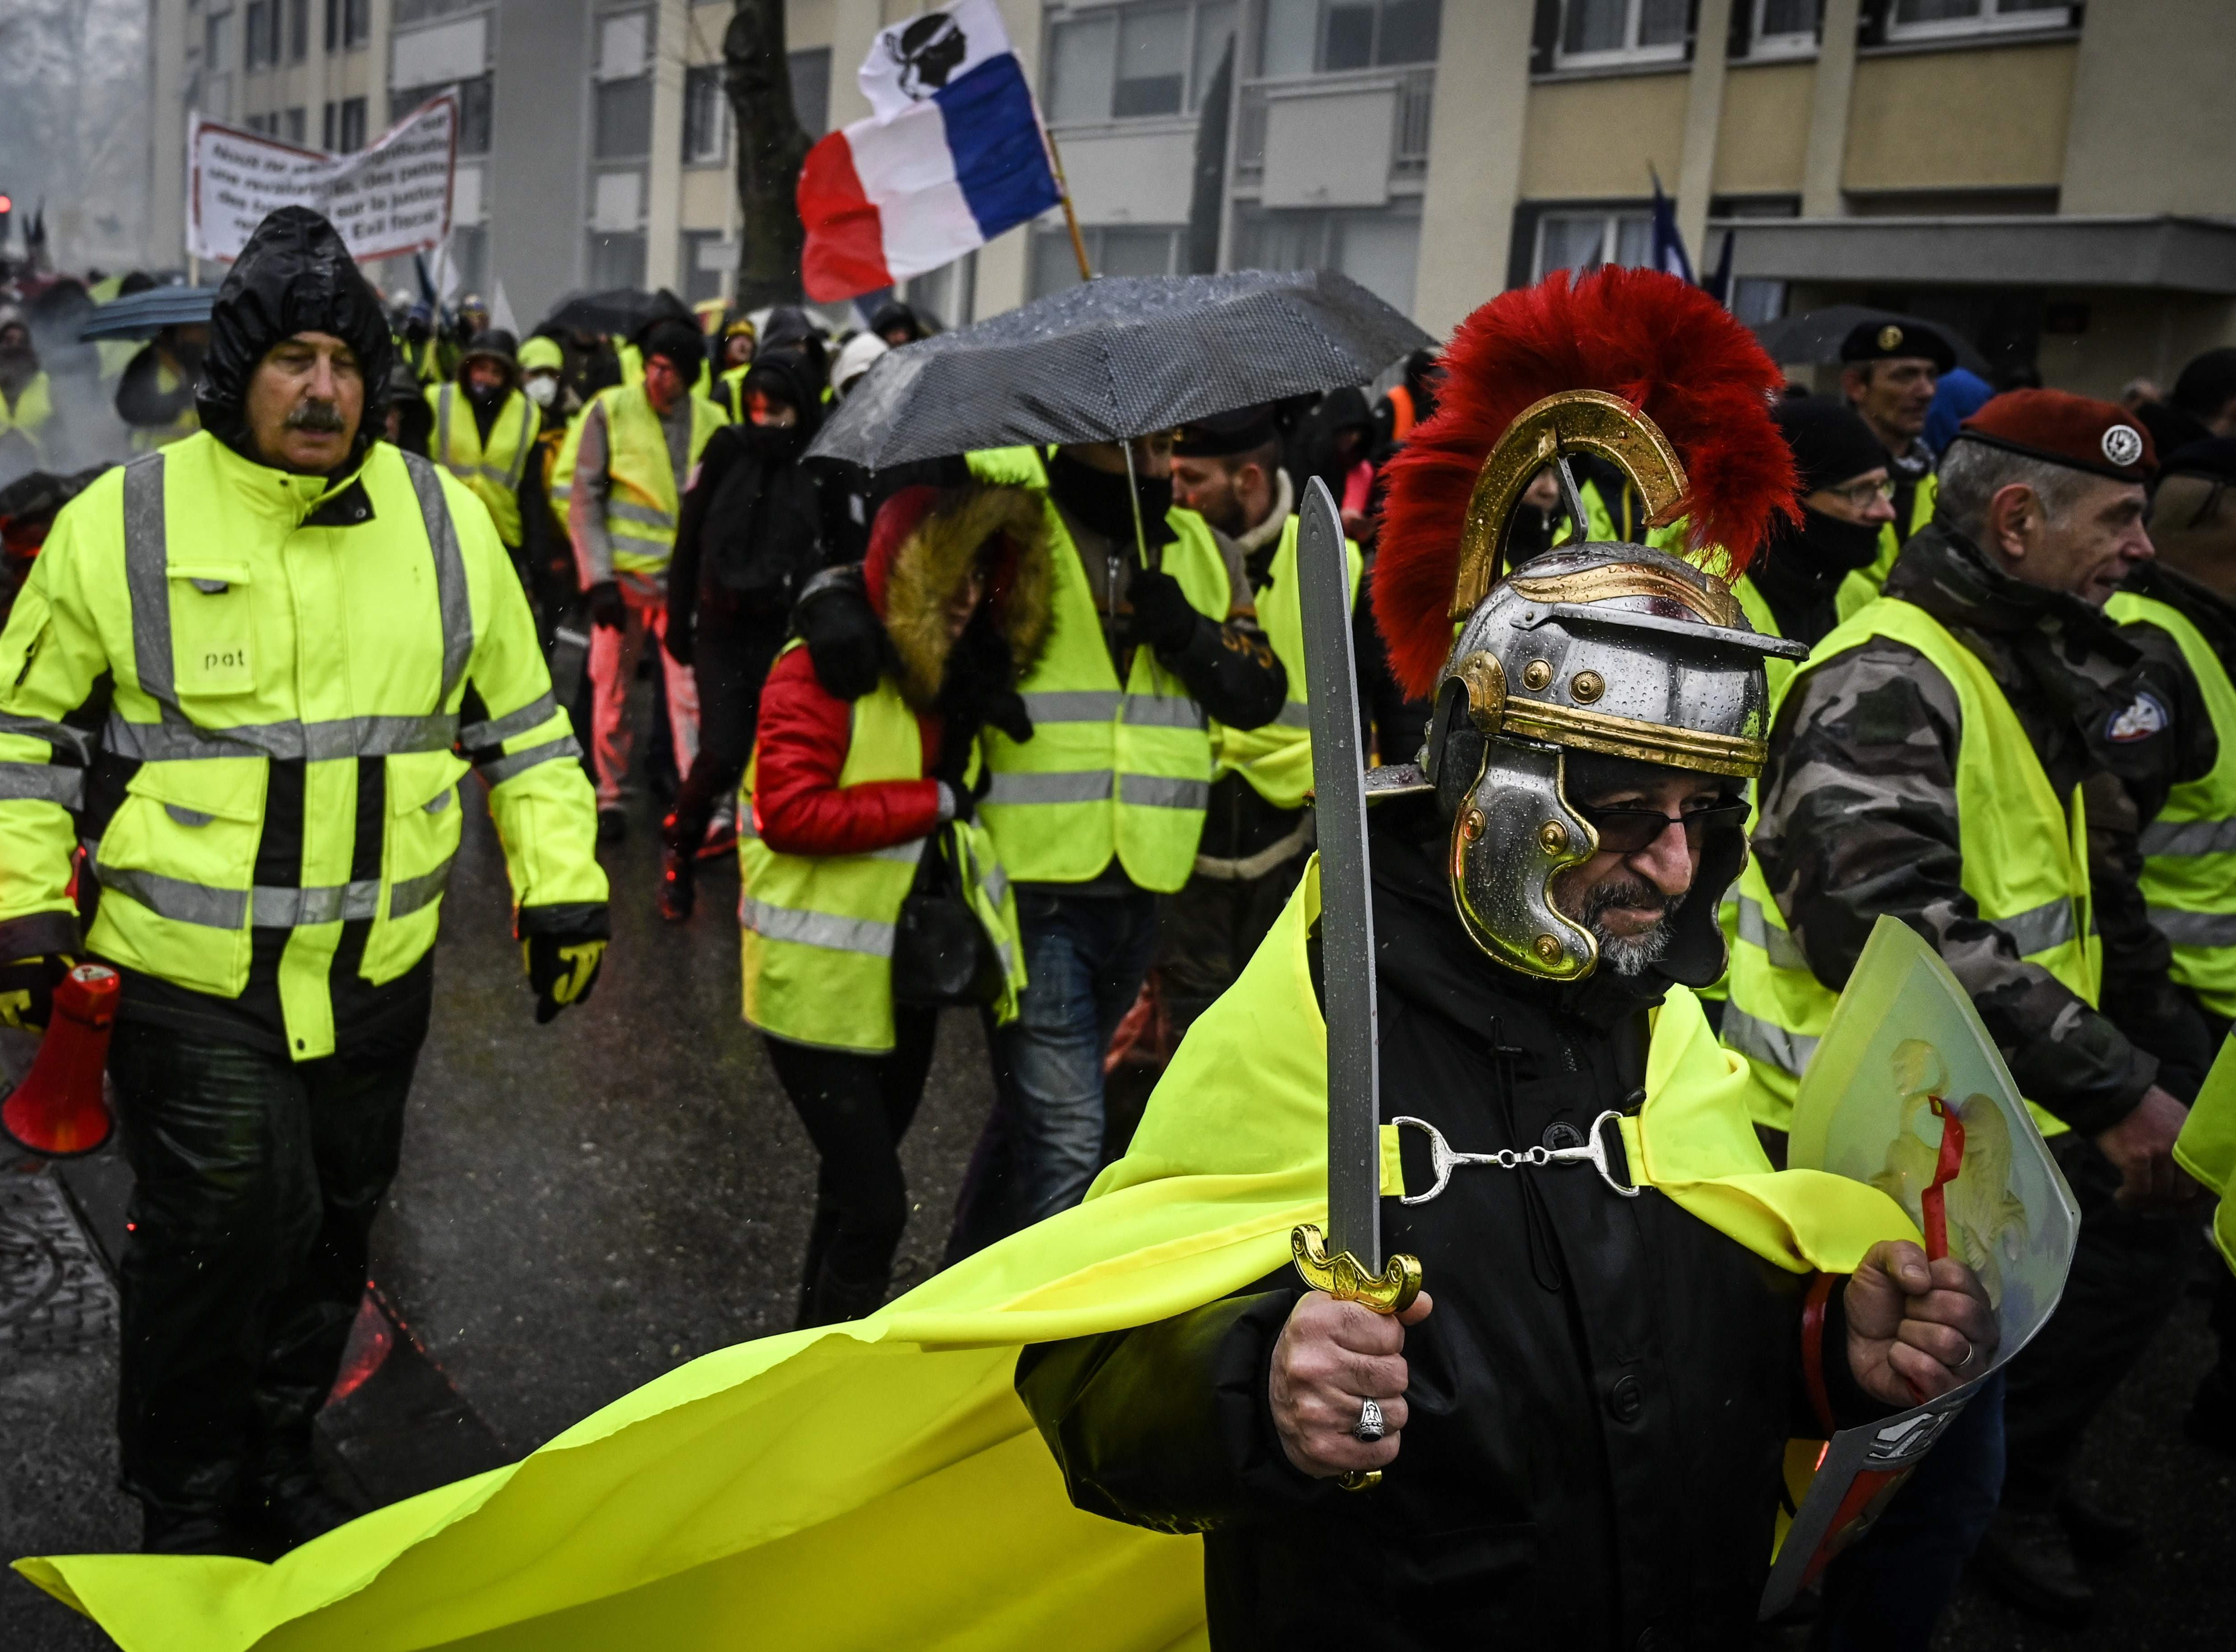 Protestors march while taking part in an anti-government demonstration called by the Yellow Vests  movement in Valence, south-eastern France on Feb. 2, 2019.